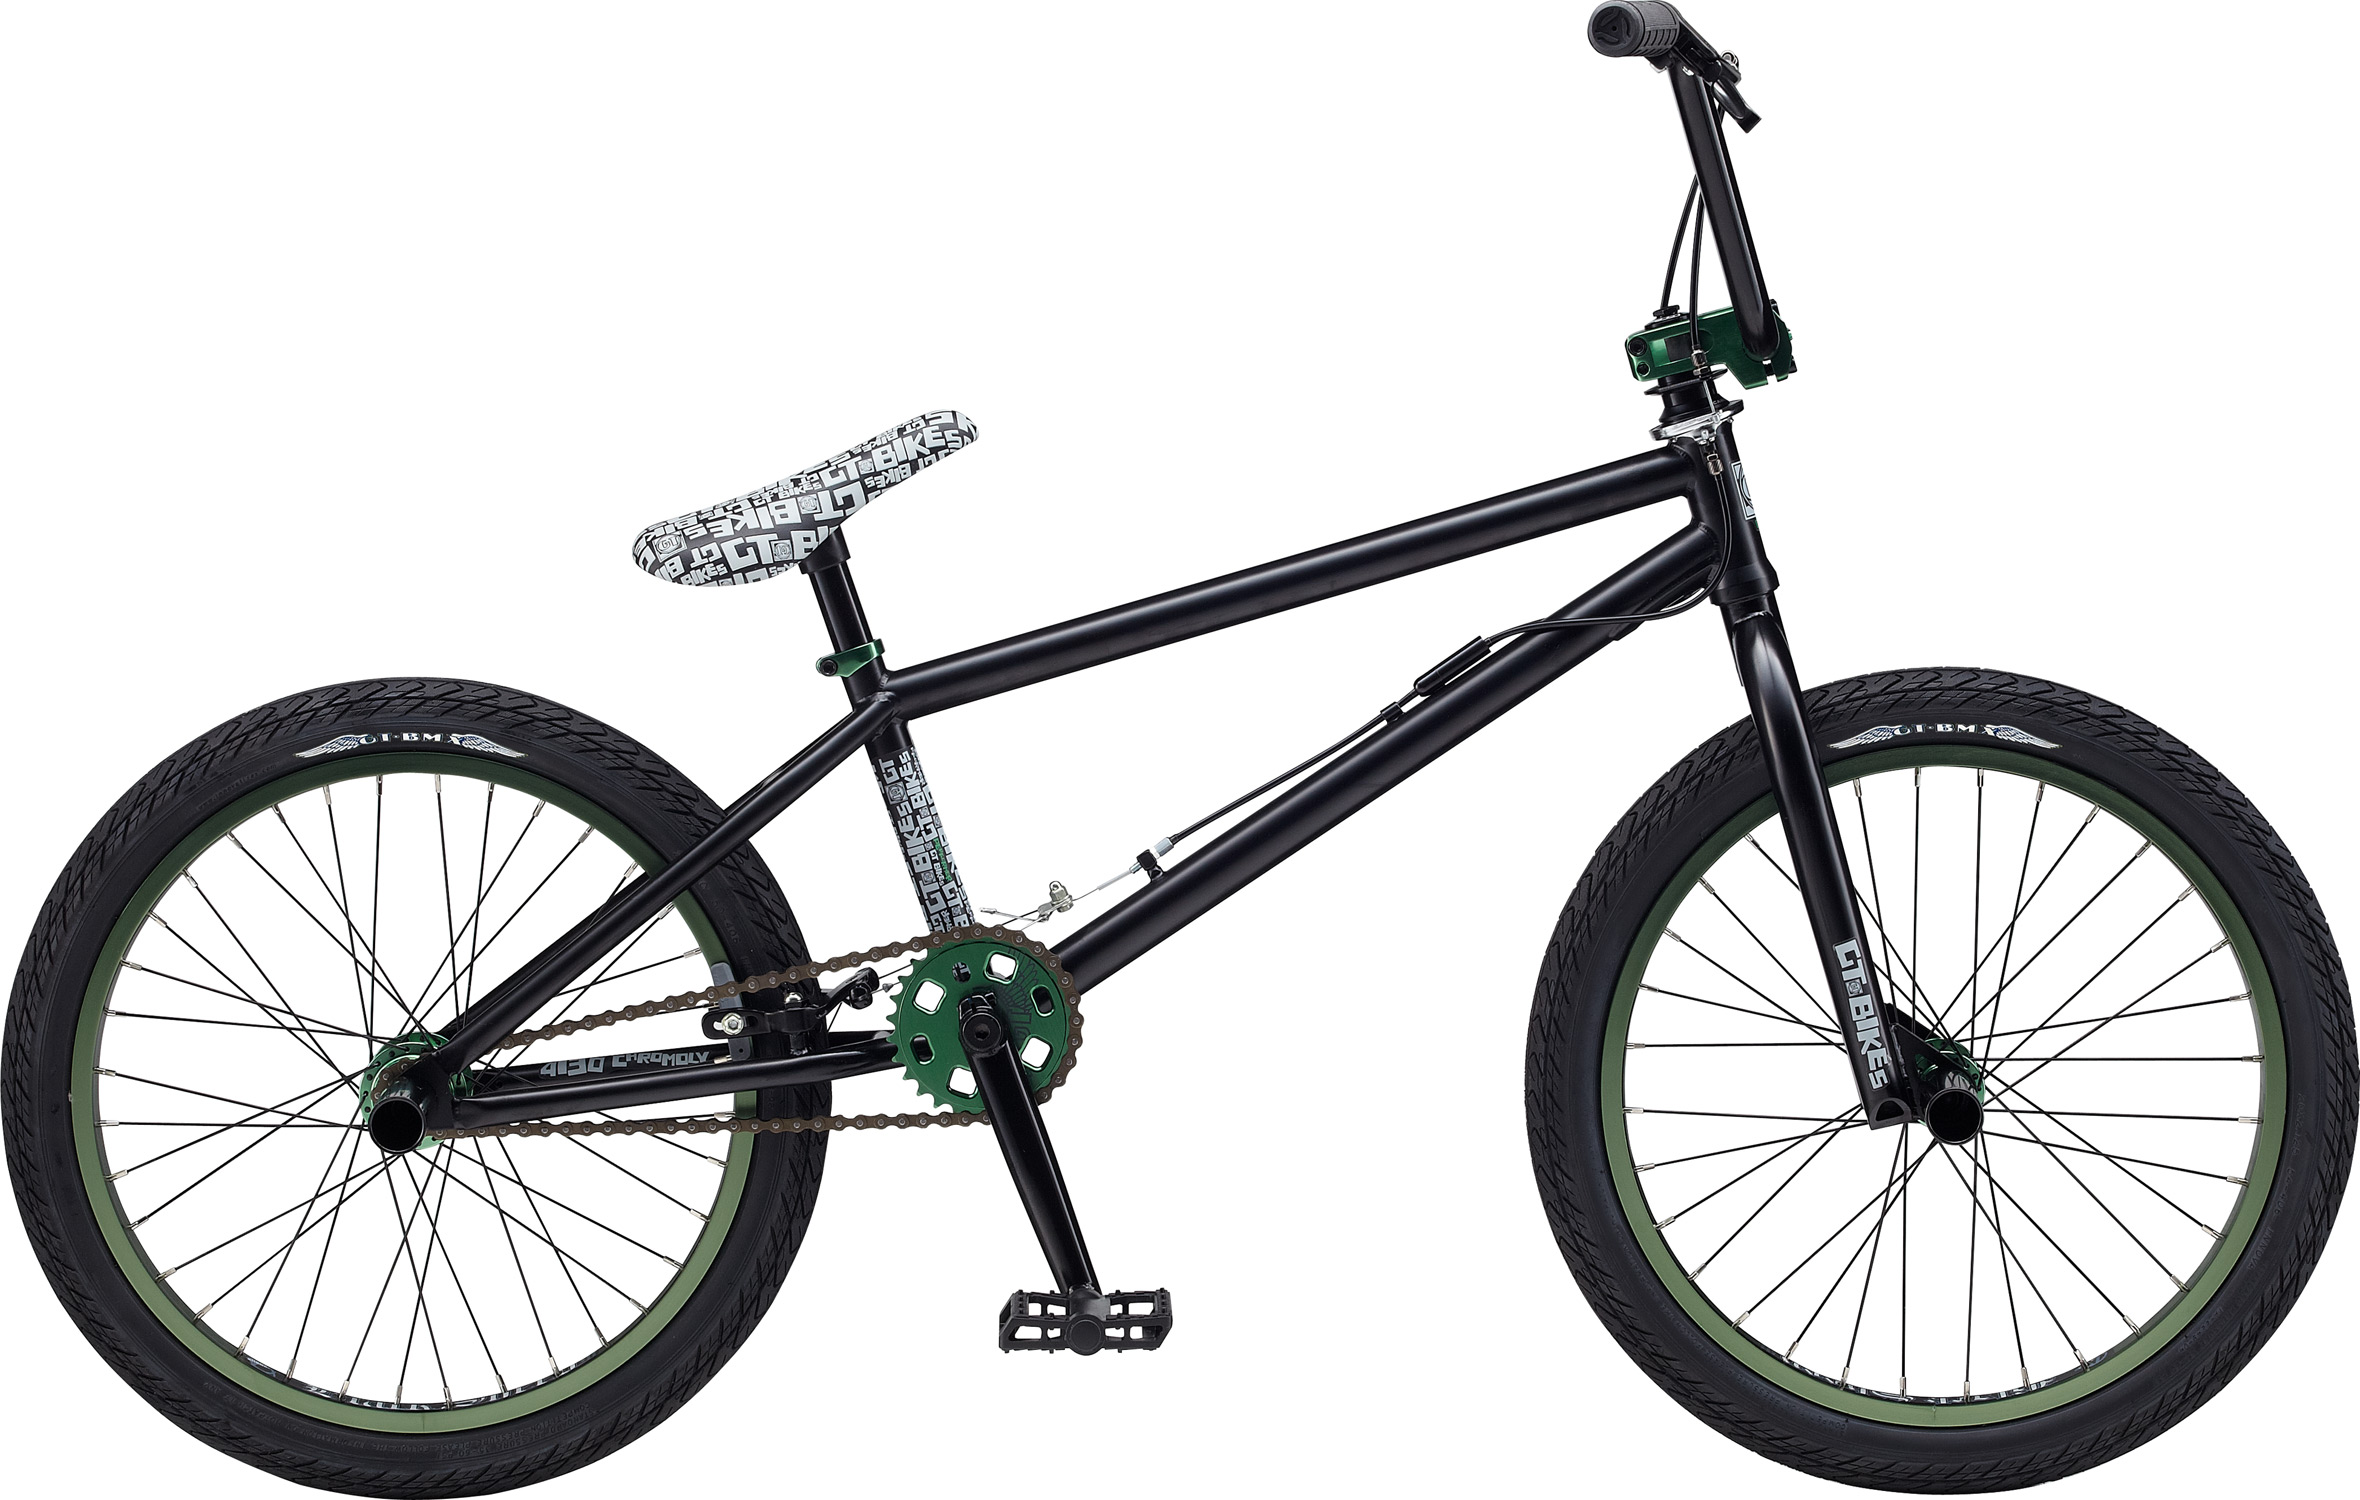 "BMX Key Features of the GT Performer BMX Bike 26"": Colors: Chrome, Blue Frame: 2013 Classic Performer Design w/ Bent D/T And Seat Stand Stays, Full Hi-Ten, American BB , 14mm Dropouts, Seat Stay V-Brake, External 1-1/8"" H/T Fork: GT Classic Performer Design, Cr-Mo 1-1/8"" Steerer, Hi-Ten 31.8 O.D. Blades, 14mm axle Chain: KMC Z410 Crank: GT Tubular Cr-Mo 3Pc., 175mm Arms, Cold Forged Cr-Mo 19mm x 8T Spline Spindle, 34T Steel Chain Wheel GT Design Bottom Bracket: American Loose Ball Bearing Pedals: GT Low Profile Large Size Platform Design, PP Material, Boran Axle Cog Set: 17T Freewheel Rims: Alex Y303 36F/R Hole Tires: GT Freestyle Design 26"" x 2.1"" F/R Hubs: GT Alloy Mohawk 36H Rear Hub: GT Alloy Mohawk, Flip/Flop FW, Aluminum, 36H, 110mm Old, Black Anodize, 22.2mm Washers, 14mm Axle CP Nuts, GT Logos Spokes: 14G Nipples: Brass Brake Levers: Tektro 313A Alloy V-Brake Handlebar: GT Perfromer 100% Cr-Mo; 690mm Width, 100mm Rise, 9 Degree Sweep,32 Degree Tip, Classic Performer Cross Bar Design 22.2MM Cross Bar OD Stem: GT 100% Cold Forged 1-1/8"" Machined GT Logo On Front Cap, 50mm Ext Grips: GT Wings Logo 130mm Single Compound Headset: 1-1/8"" Threadless, Steel Saddle: GT Classic Performer Design Seat Post: Steel, 25.4mm x 200mm Seat Clamp: Alloy, single bolt Extras: Two pair Cold Forged Steel Pegs - $299.95"